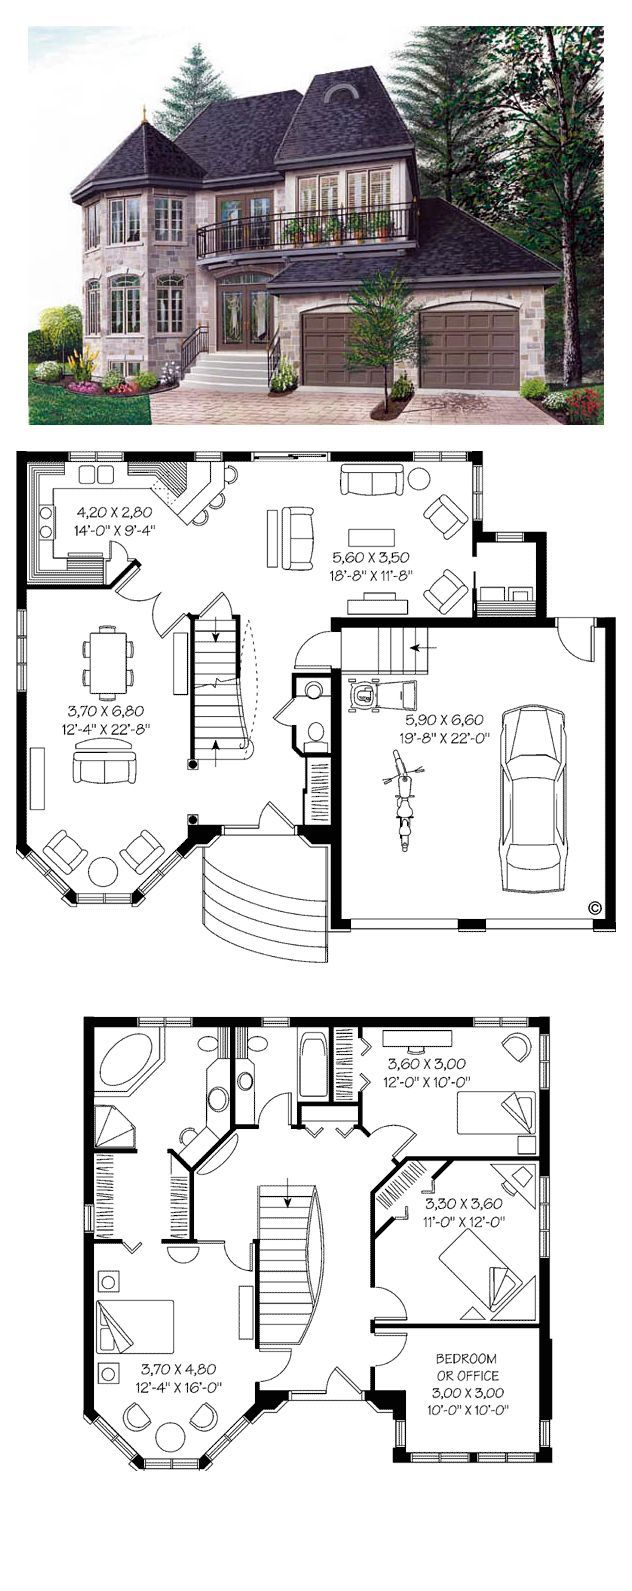 Do It Yourself Floor Plans: Victorian Style House Plan 65210 With 3 Bed, 3 Bath, 2 Car